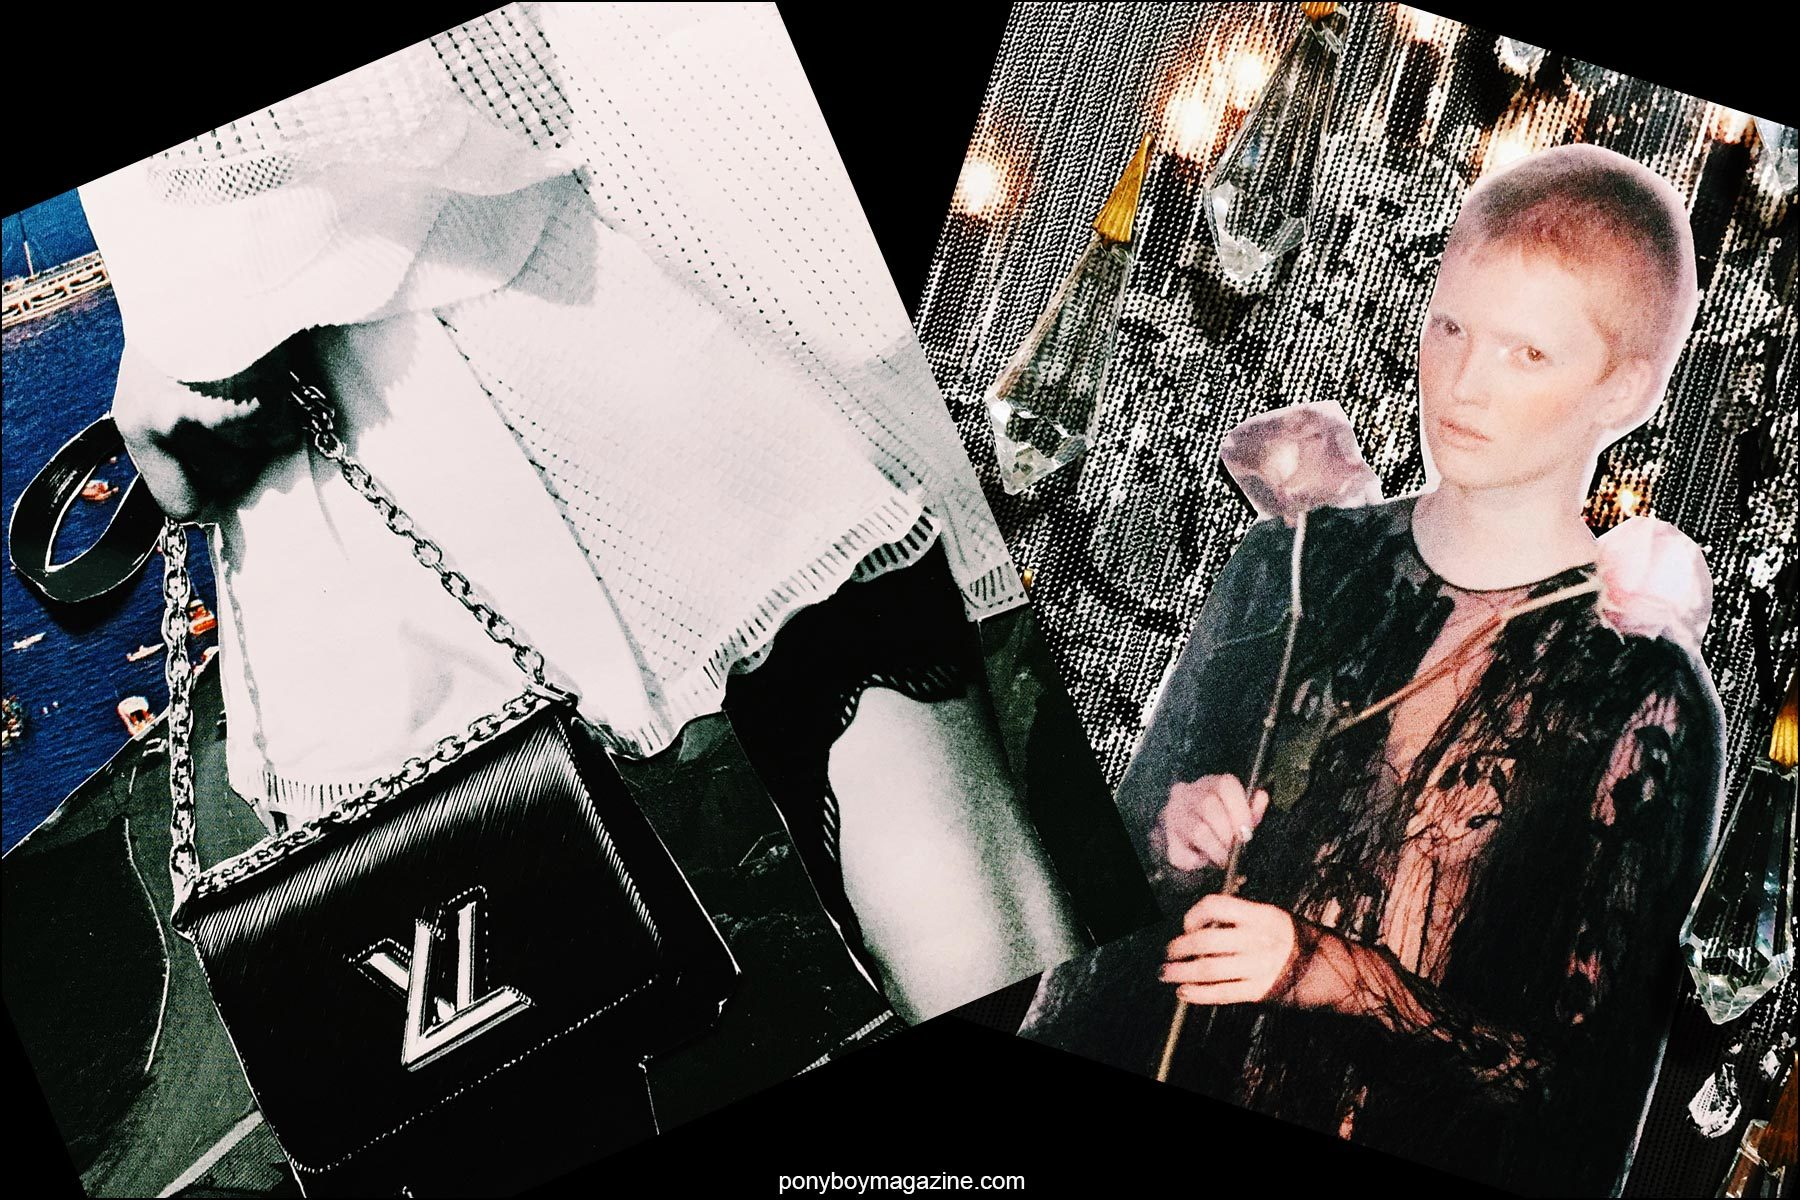 Collage artwork of Louis Vuitton and Alexander McQueen images by Patrick Keohane for RS Theory. Ponyboy magazine NY.